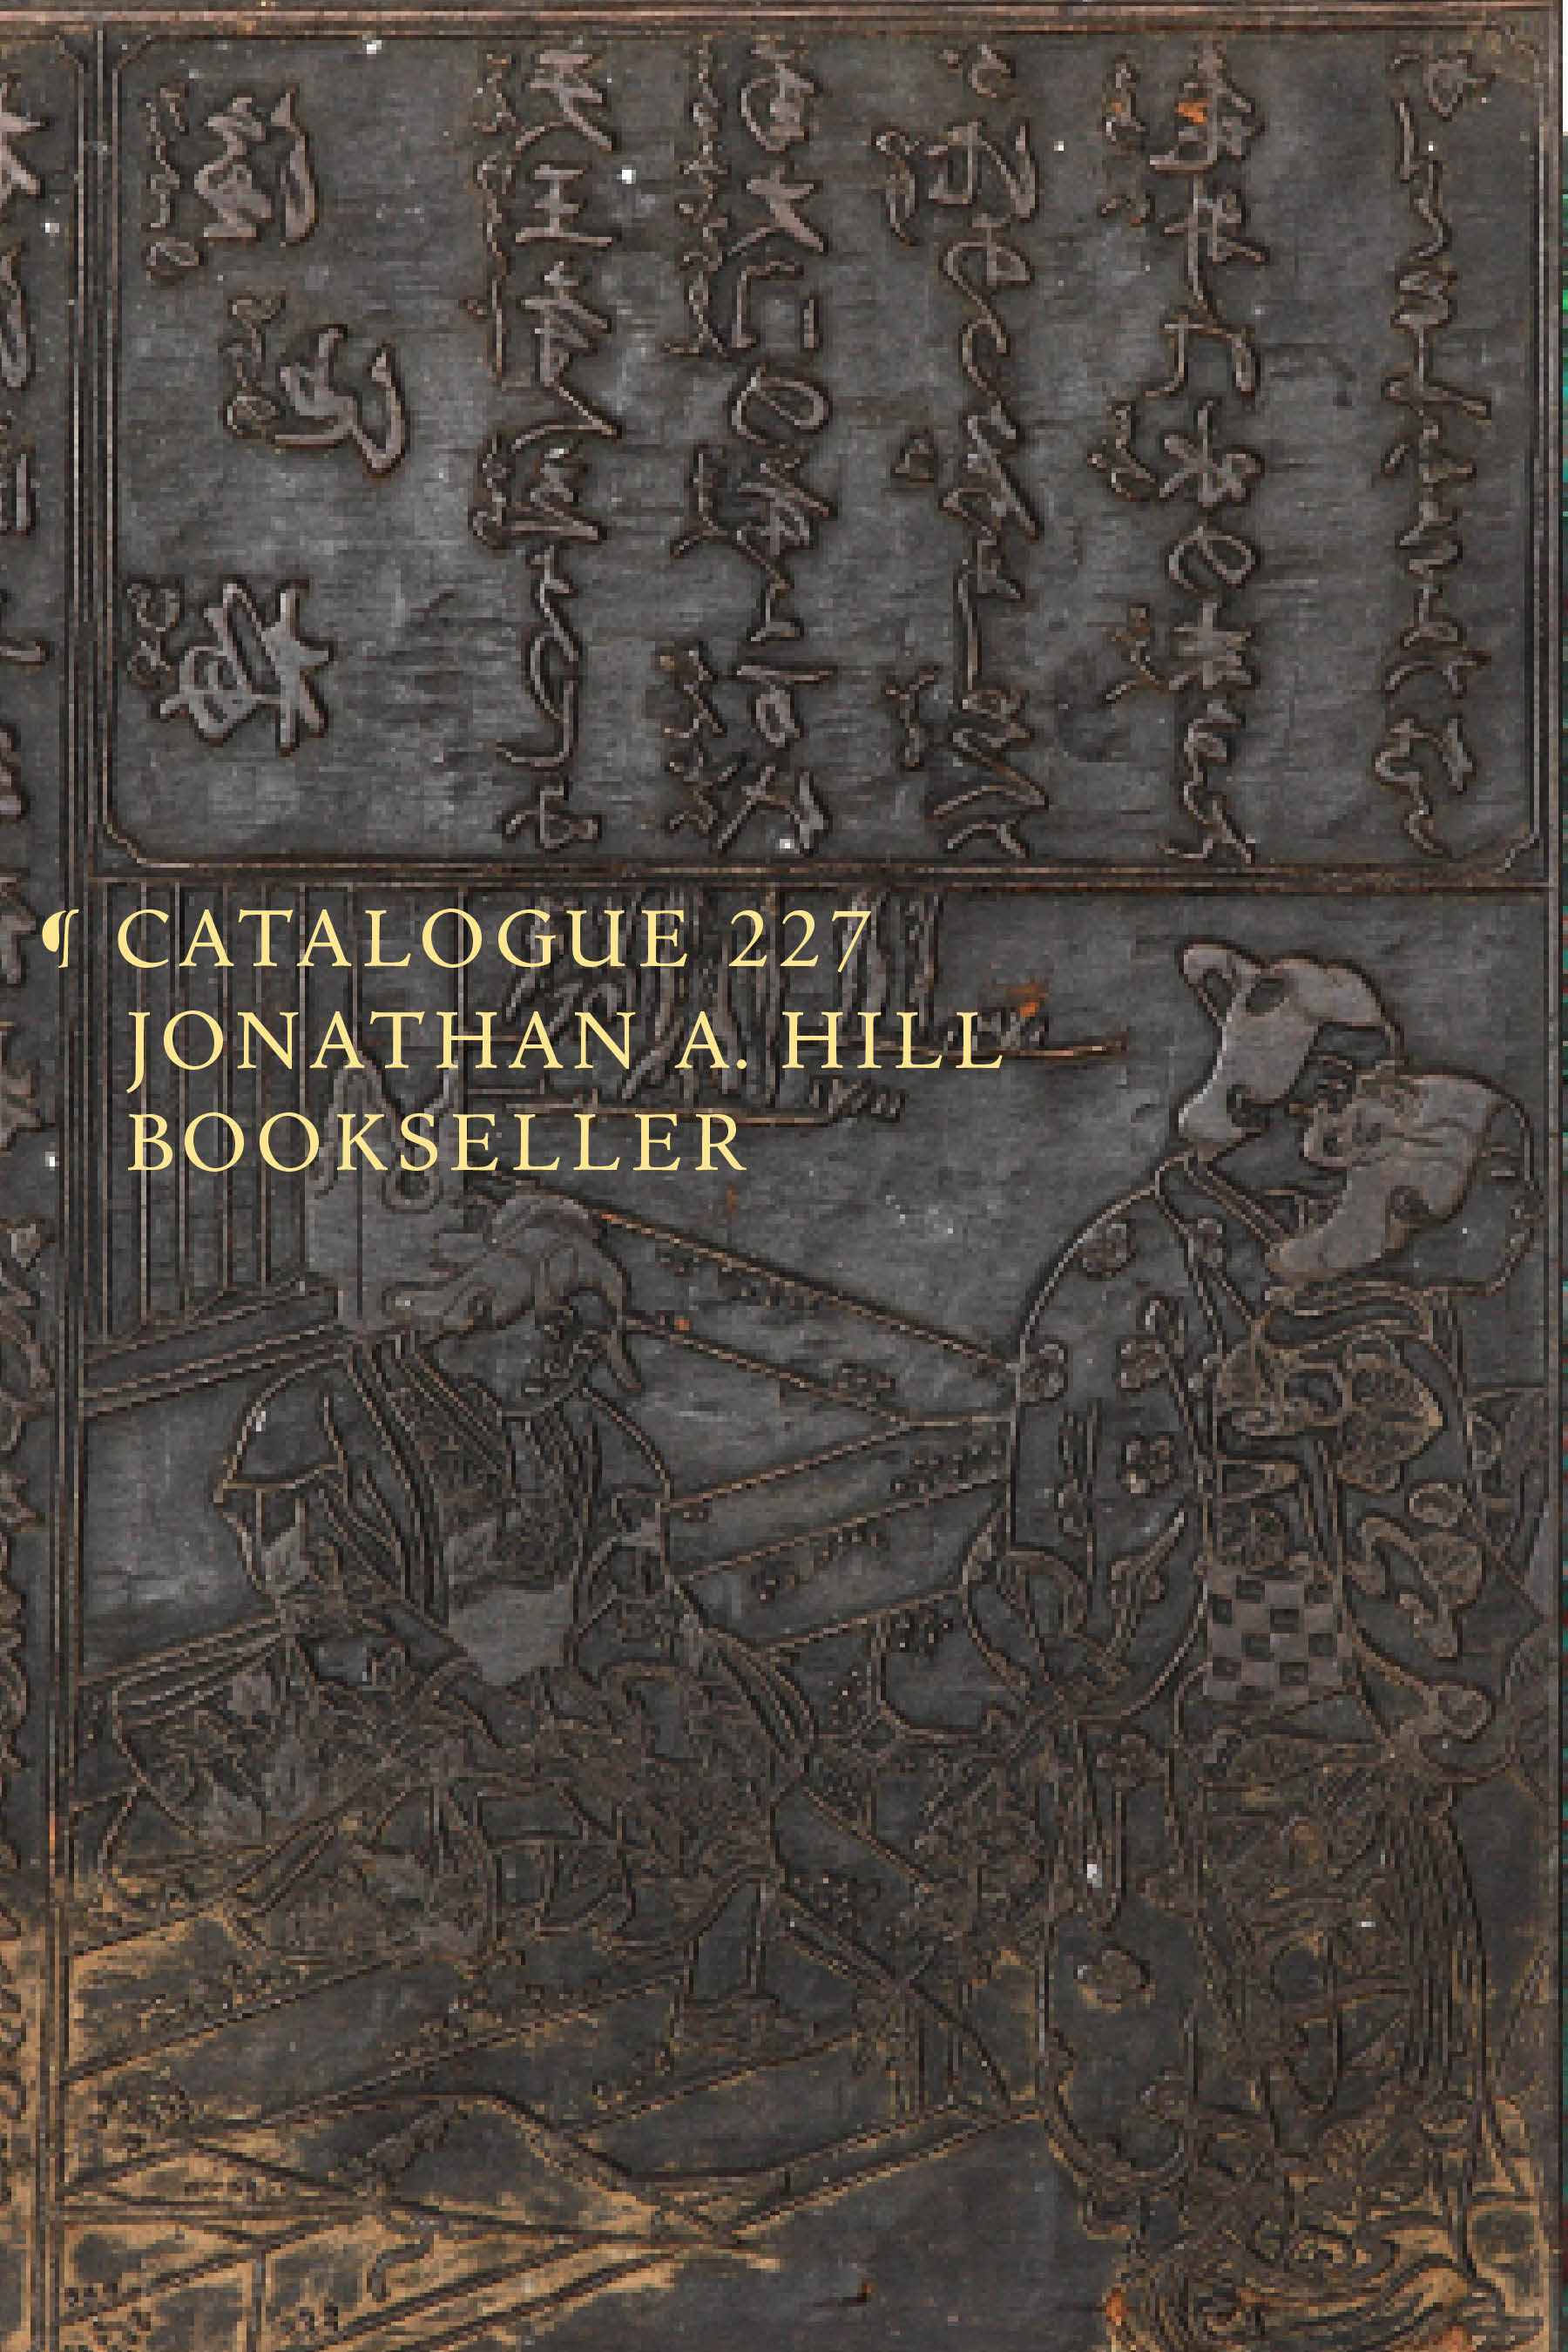 Catalogue 227